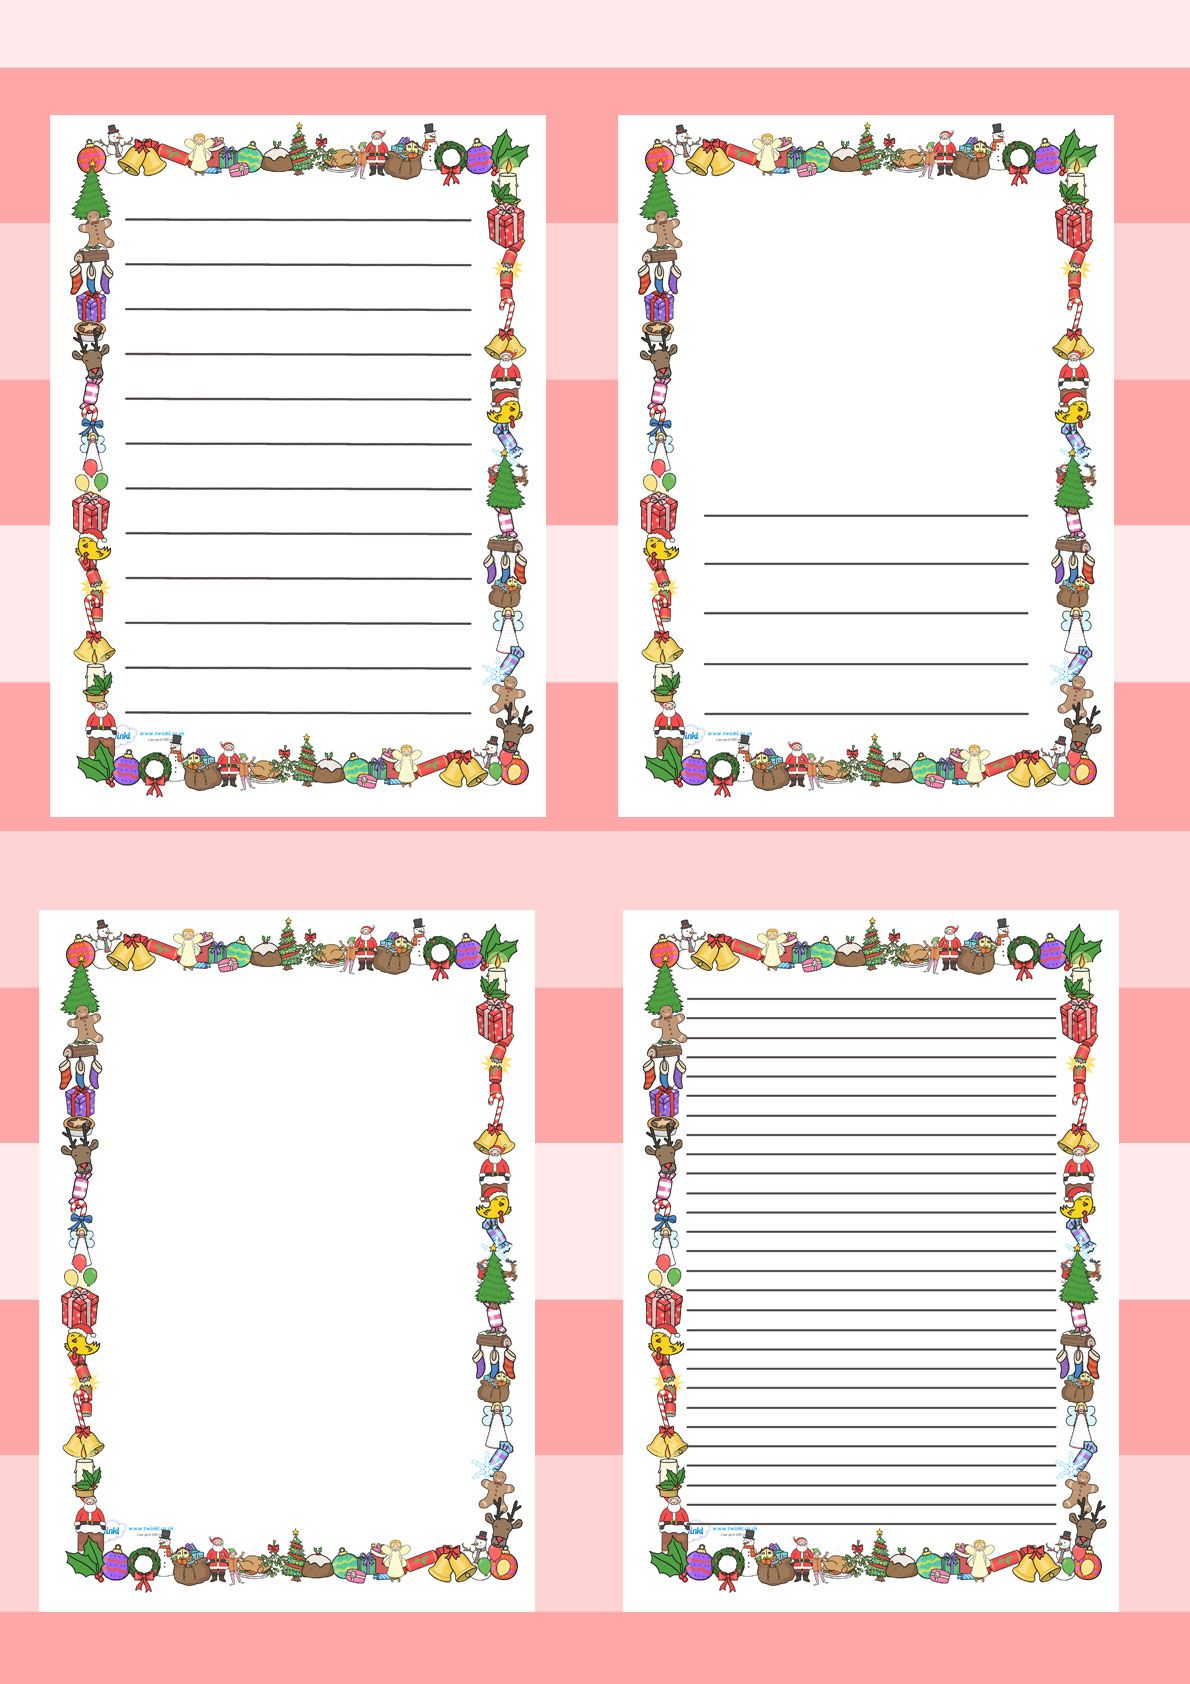 Twinkl Resources Gt Gt Christmas Page Borders Gt Gt Printable Resources For Primary Eyfs Ks1 And Sen